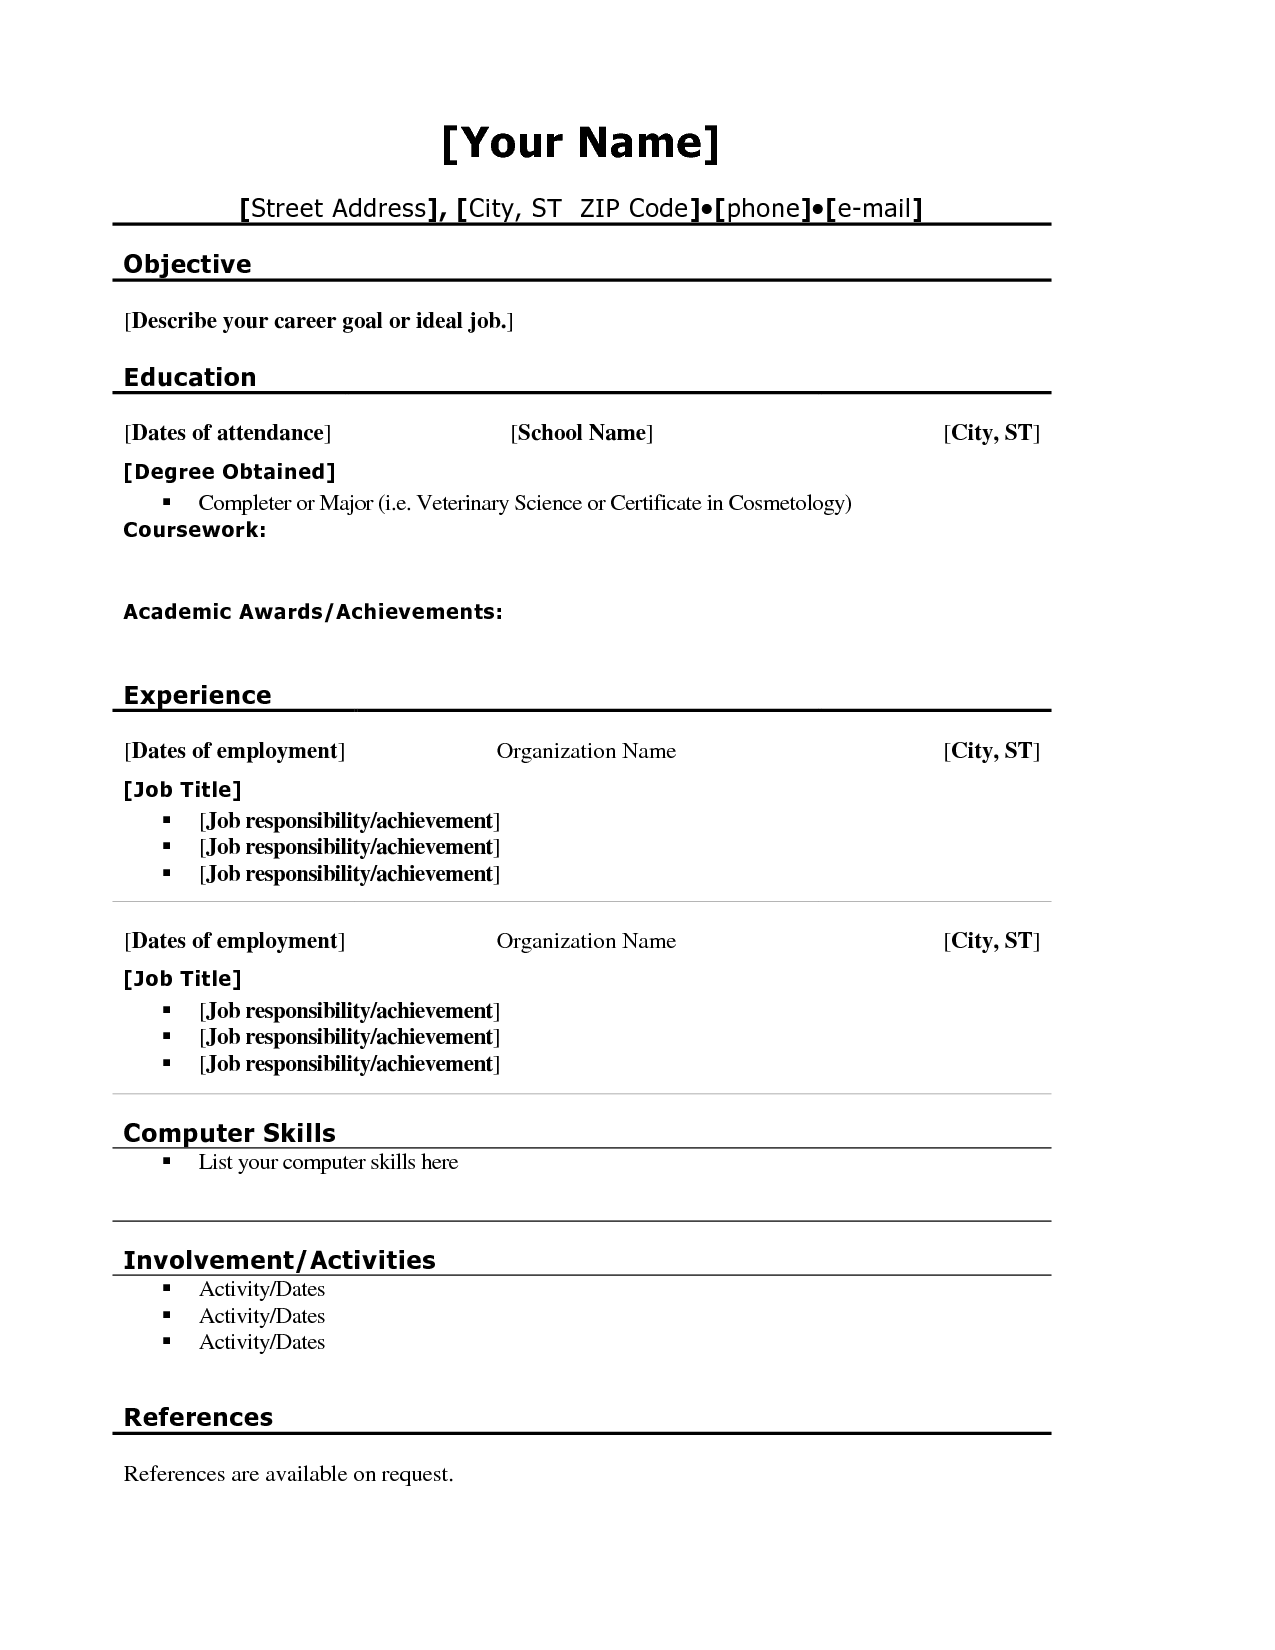 Academic Resume Template Resume For High School Graduate Resume Builder Resume Templates